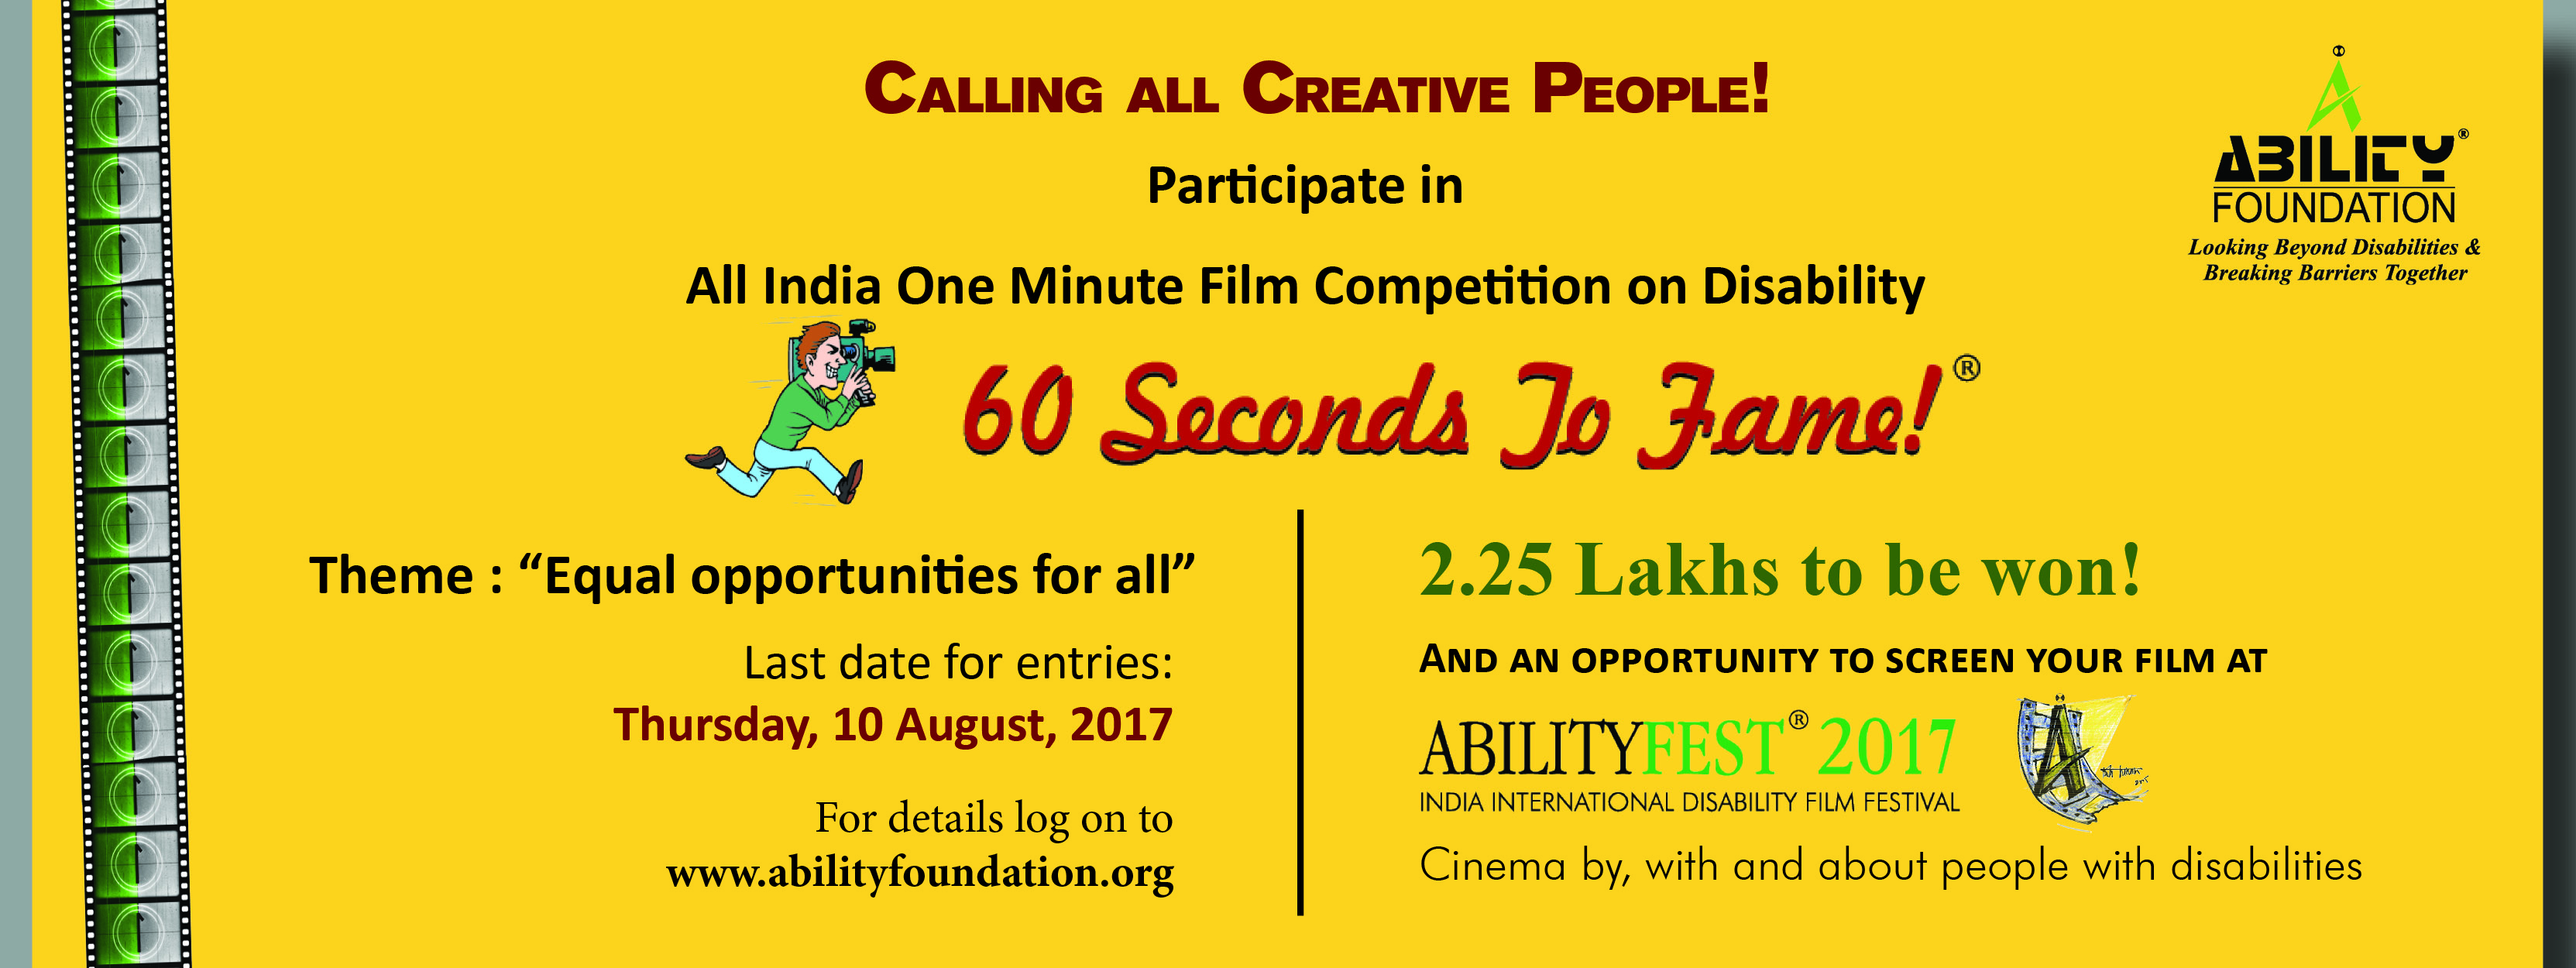 60 Seconds to Fame! – all India one minute film competition on disability